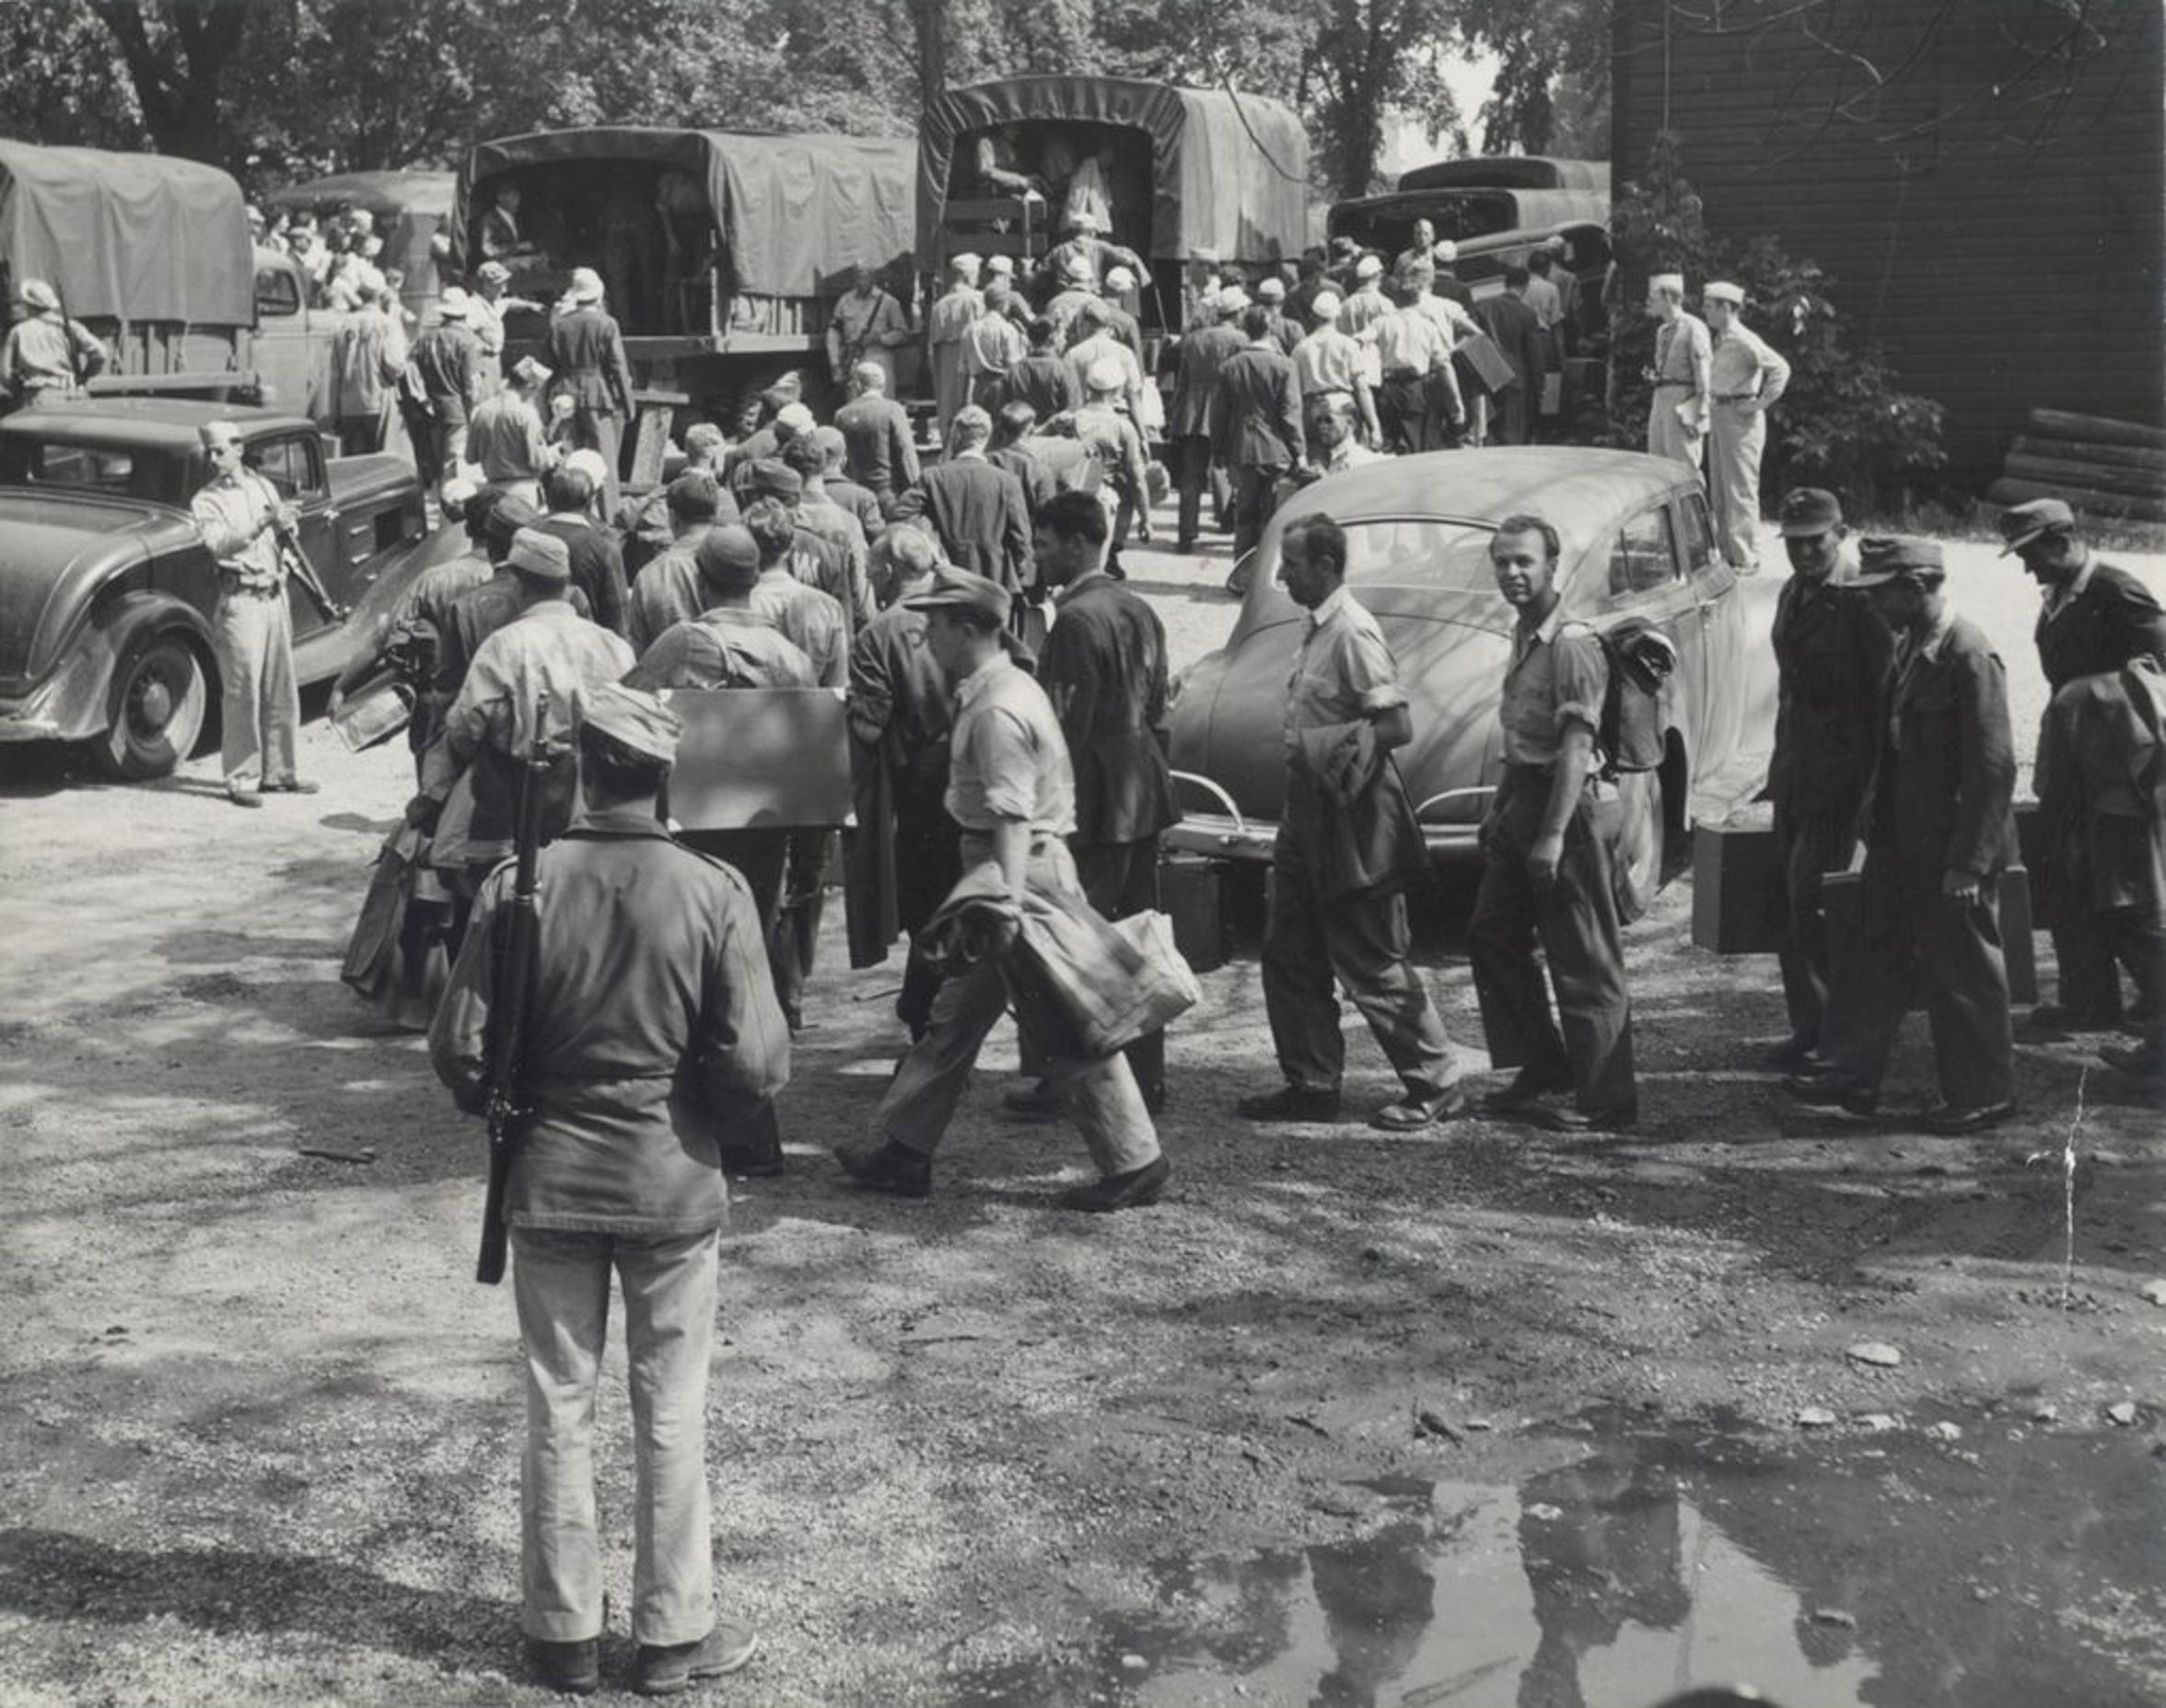 German POWs are loading onto trucks for transport to work in Door County orchards during World War II.